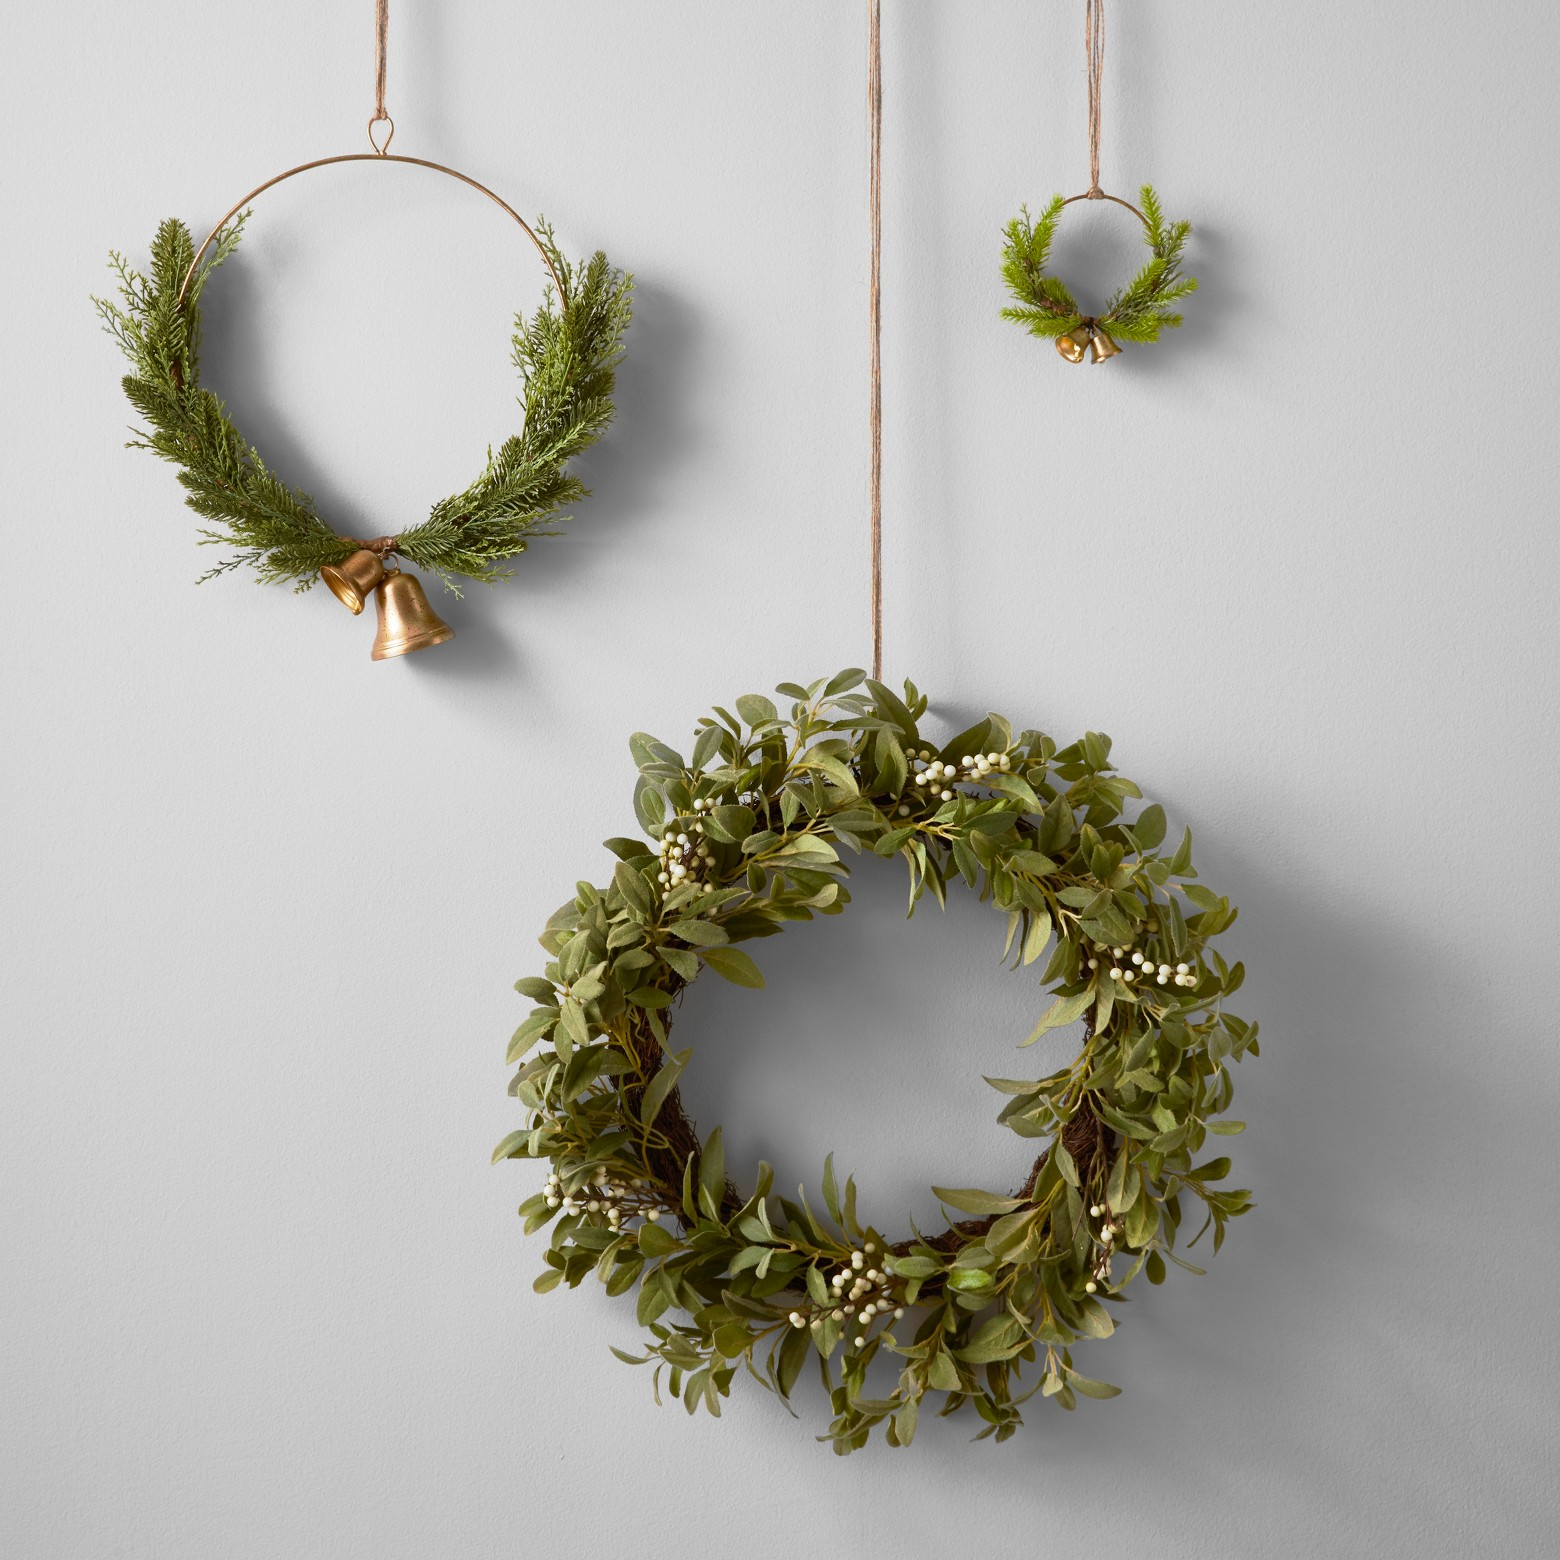 Wreath - Getting into the Christmas spirit a little early is never a bad thing! These dainty artificial wreaths are great for the holiday season. Hang the assorted sizes together, or accent your doors with these sweet foliage wreaths.